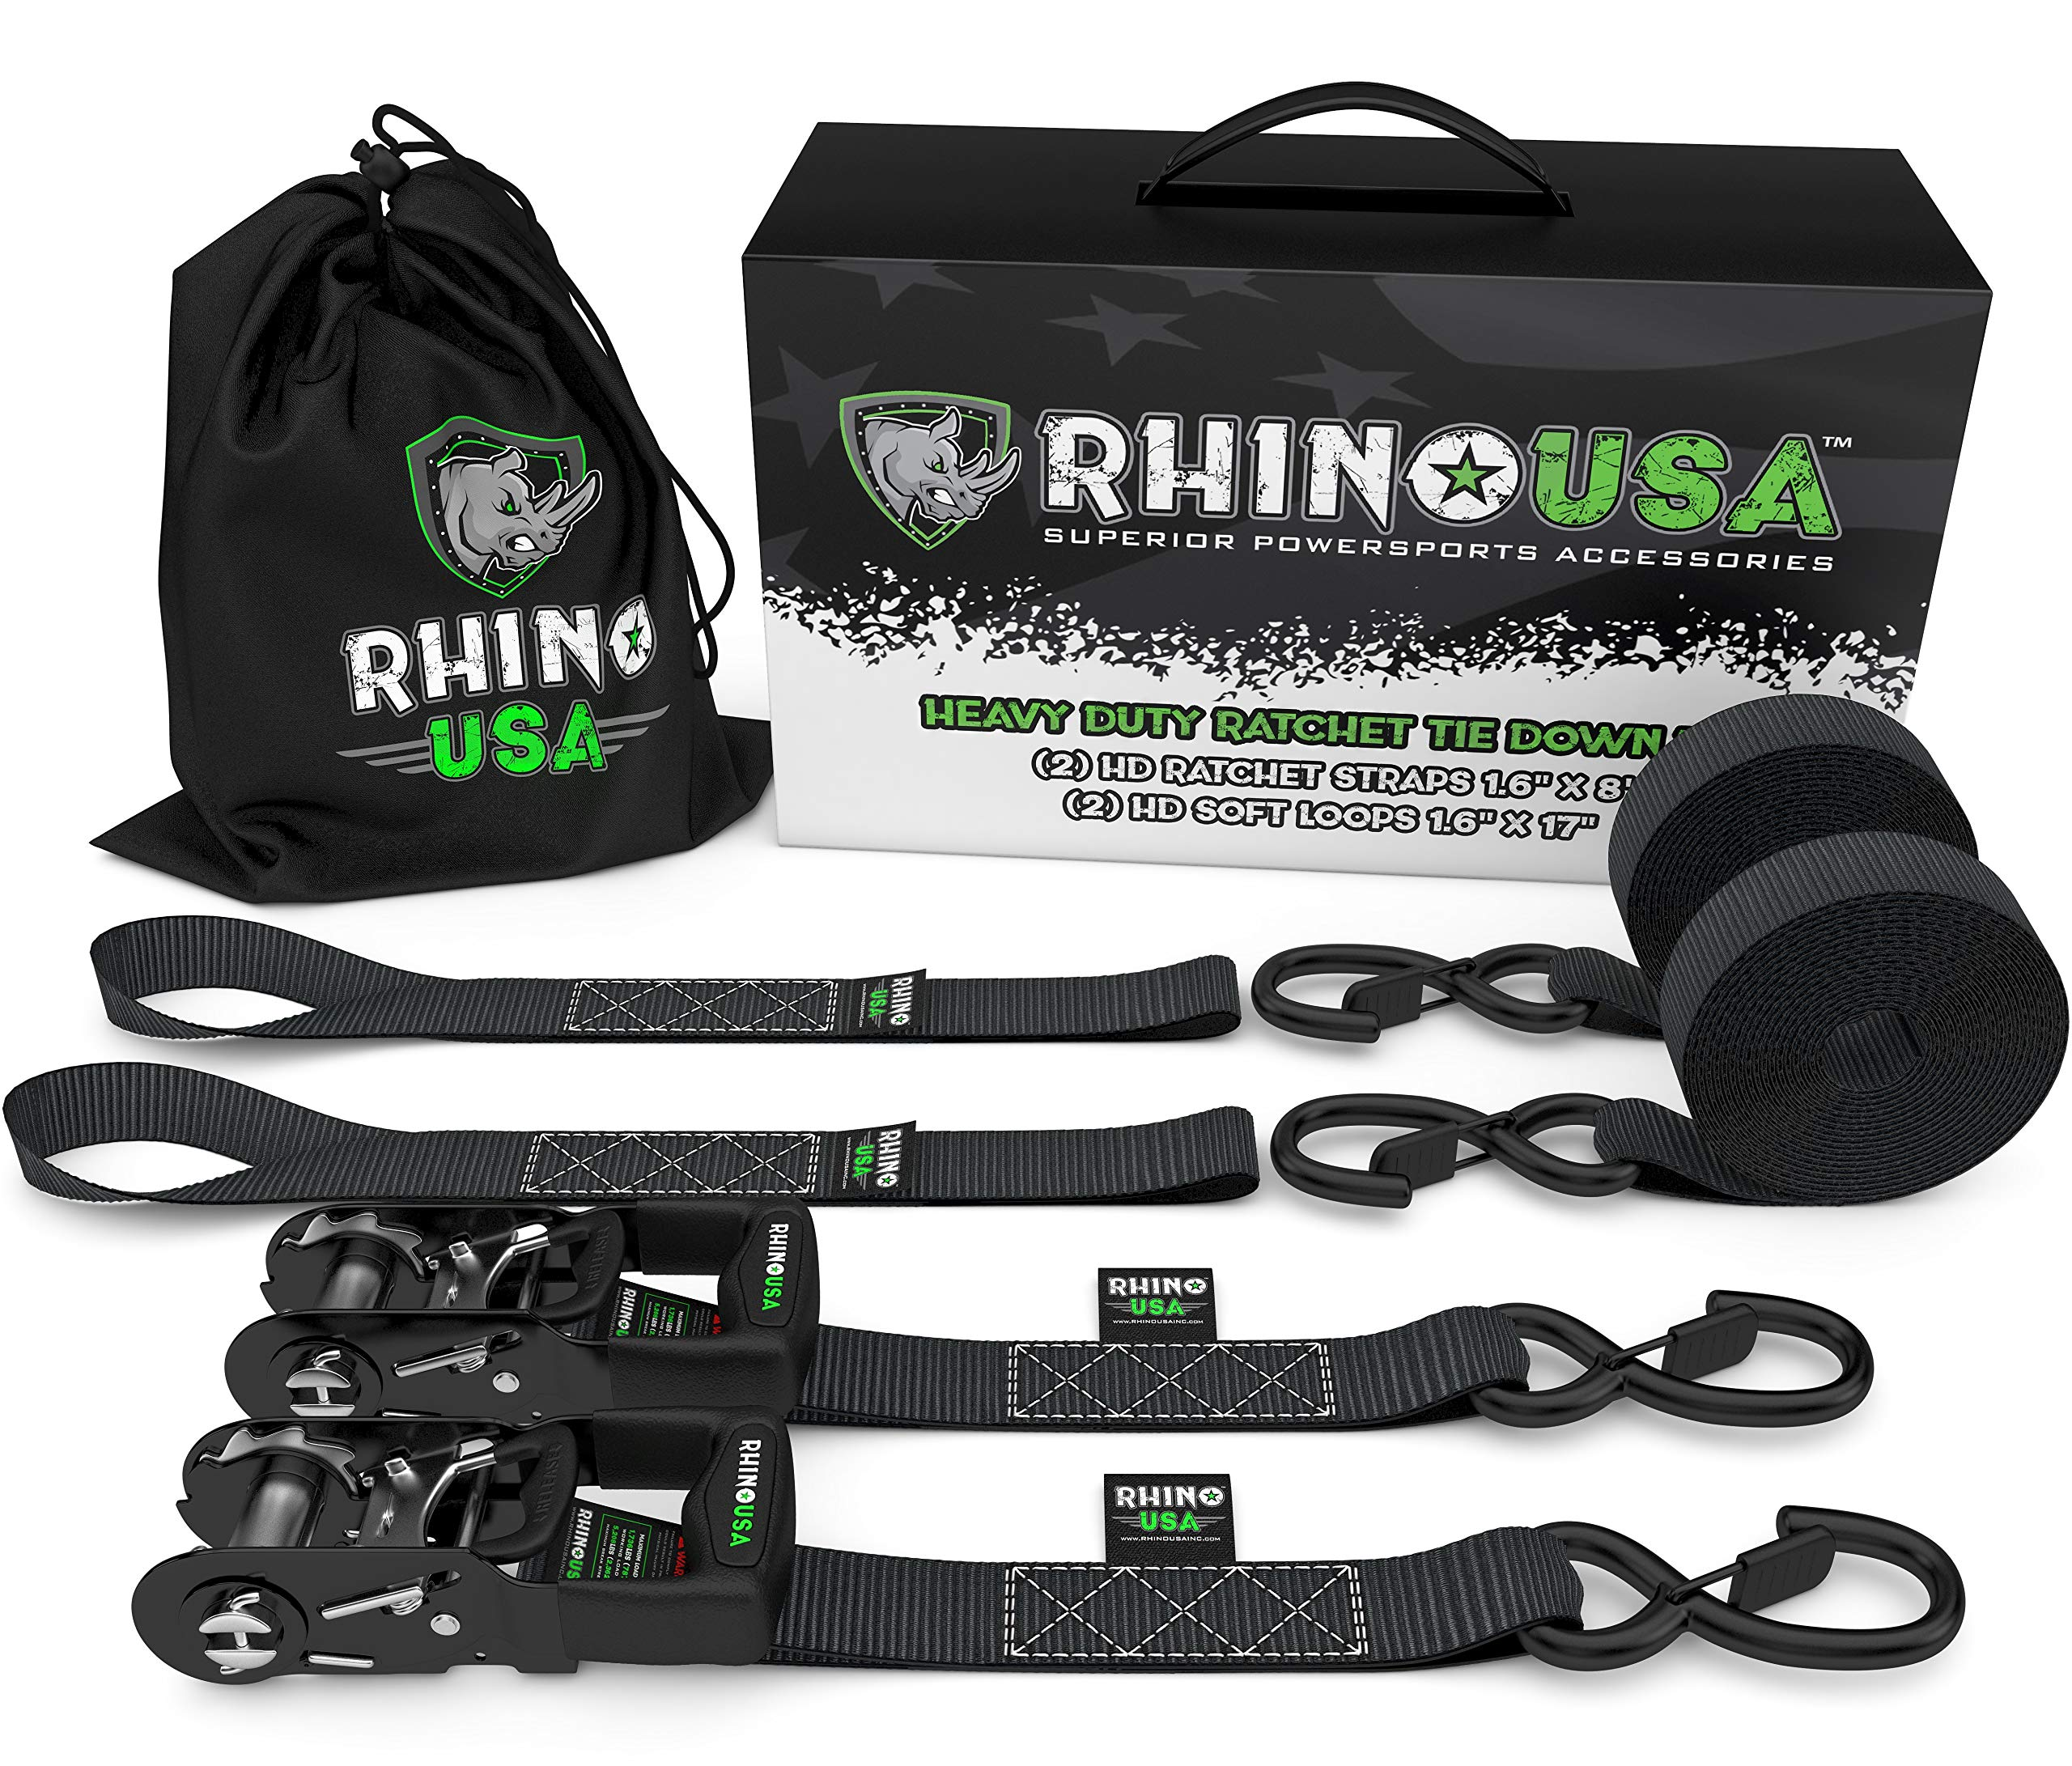 4PK RHINO USA Ratchet Tie Down Straps Includes BLACK Securing Cargo - 1,823lb Guaranteed Max Break Strength Best for Moving Premium 1 x 15 Rachet Tie Downs with Padded Handles 4